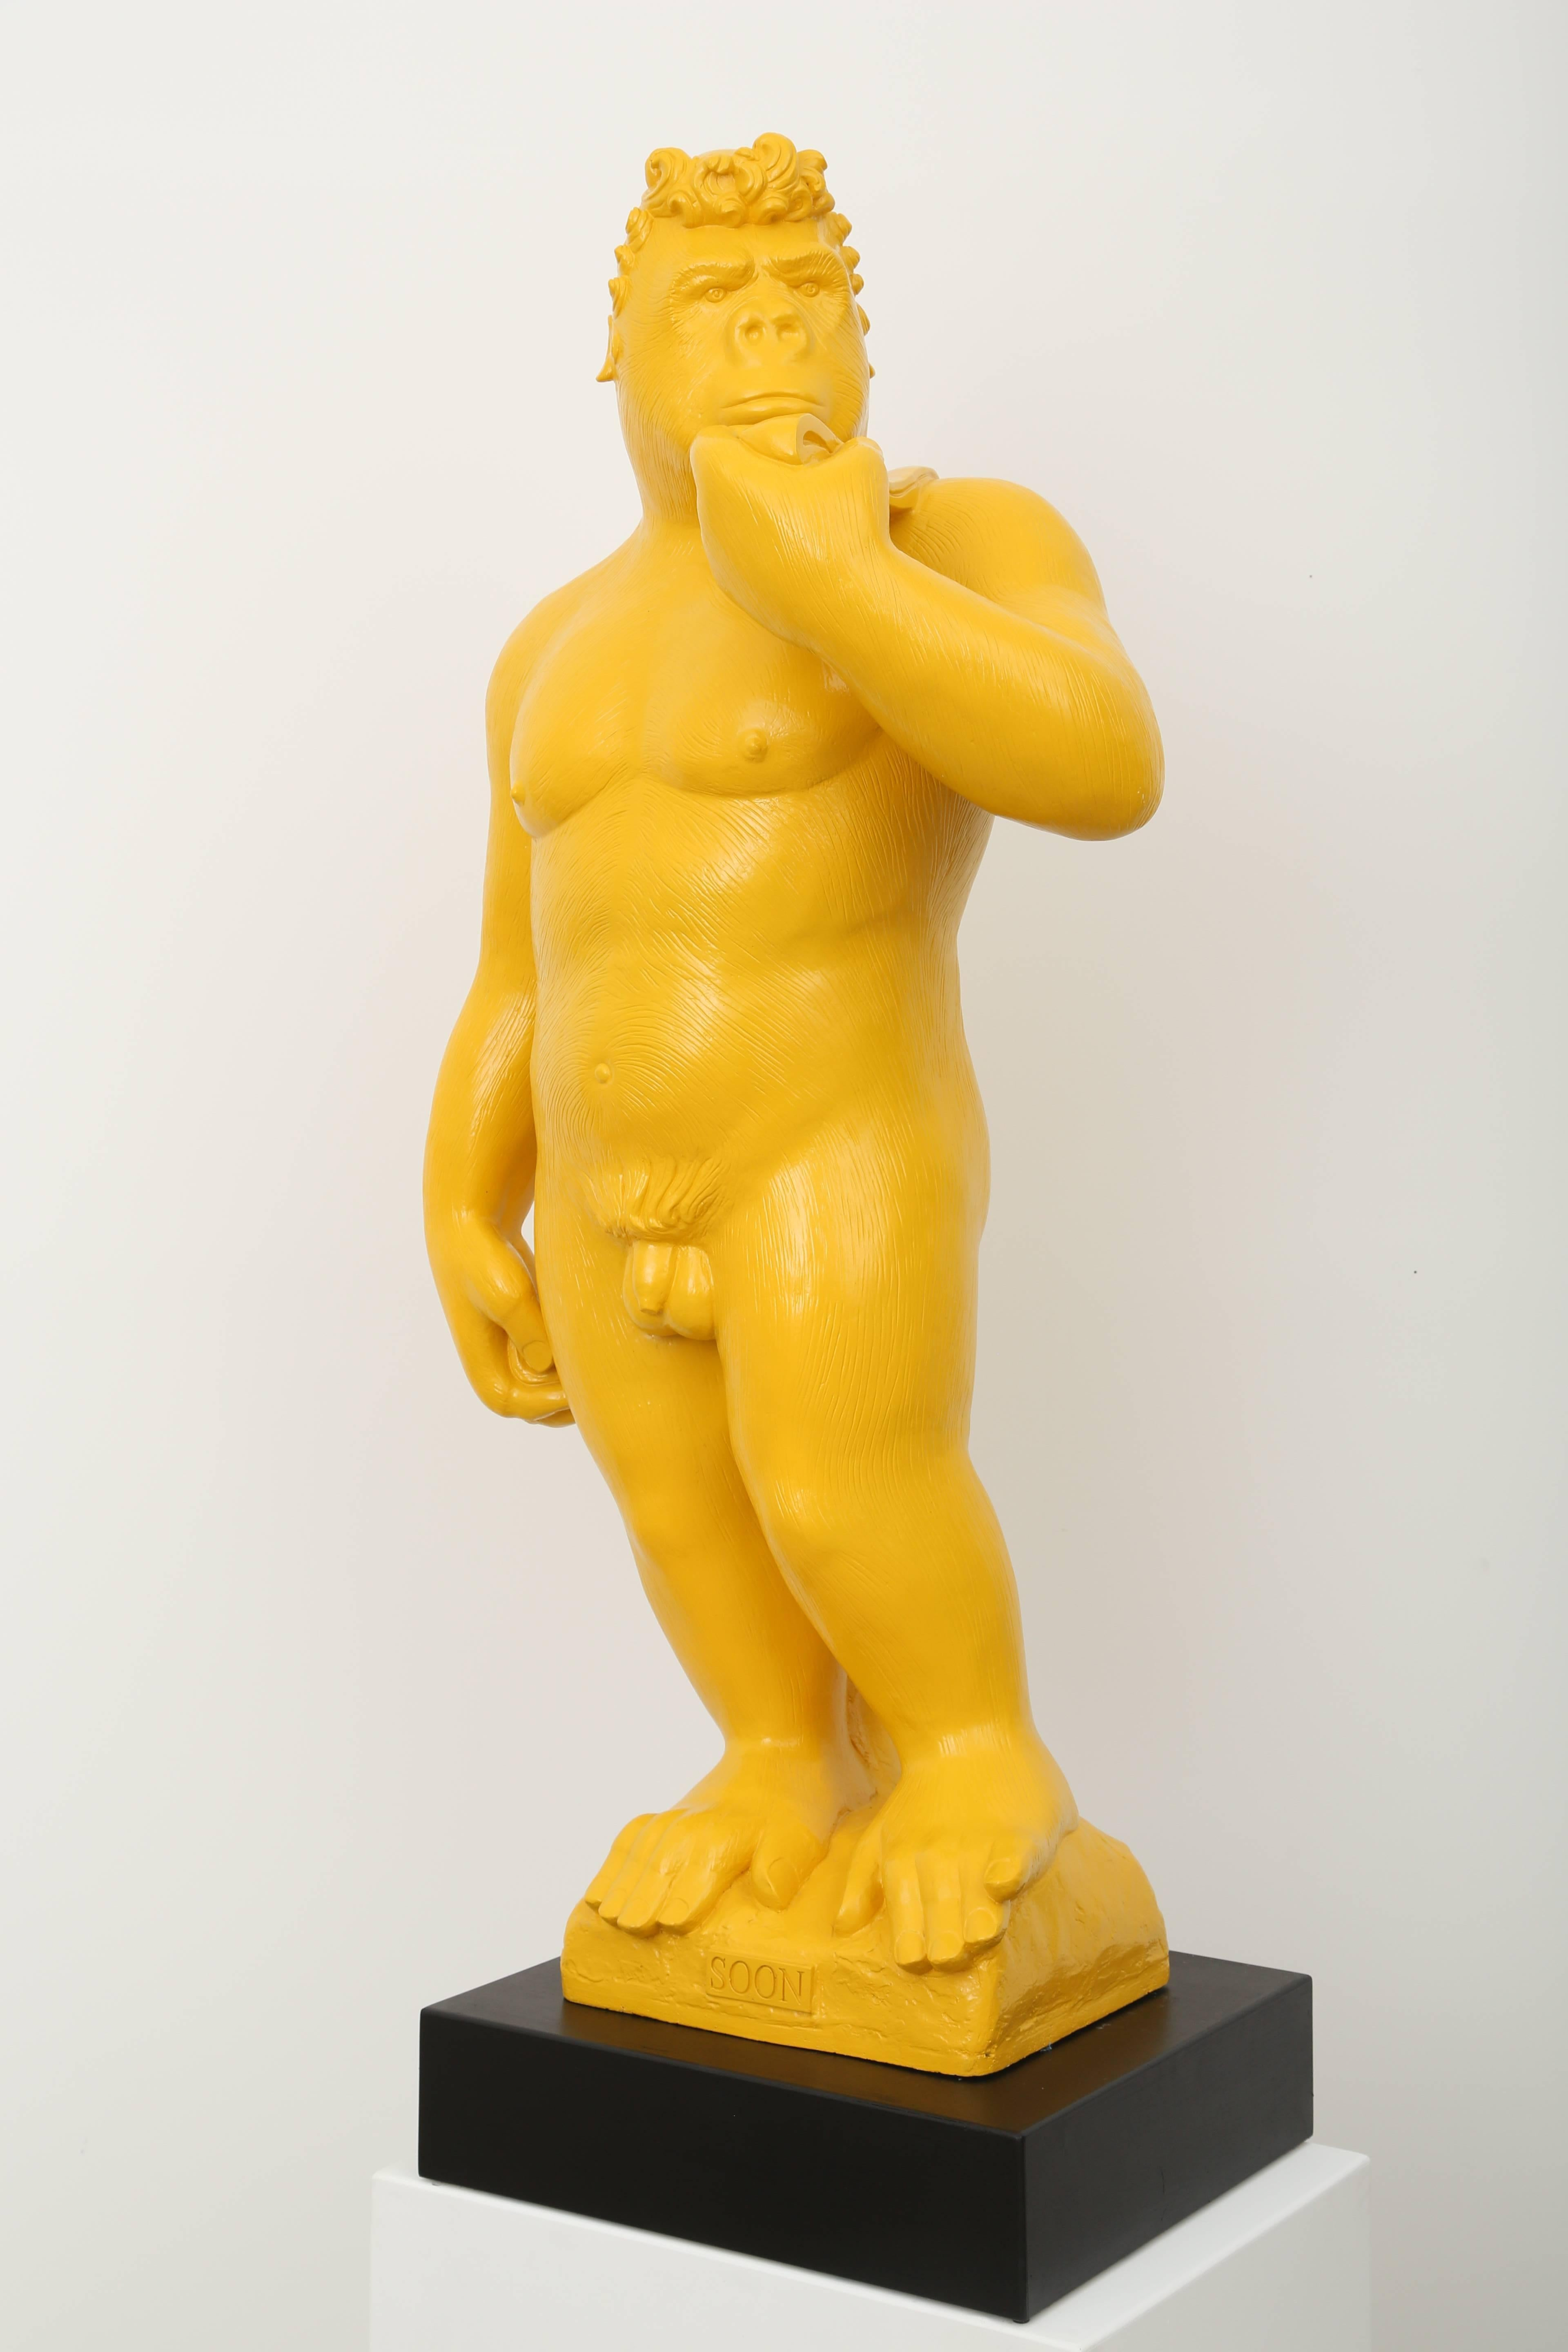 """Soon ! Yellow Gorilla Sculpture in the posture of the """"David"""" by Michelangelo"""